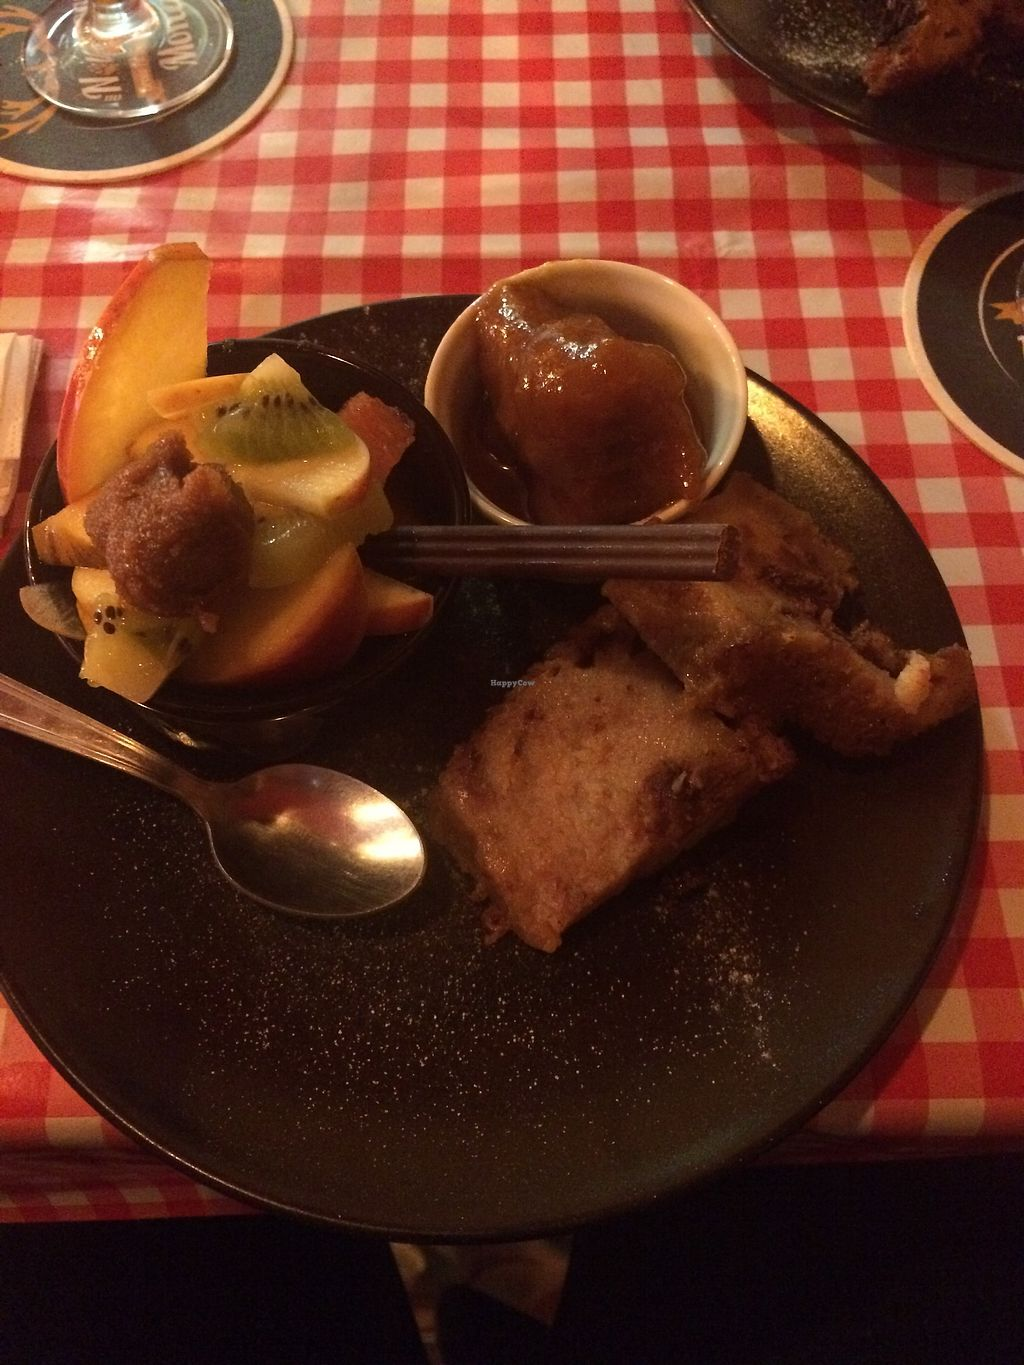 """Photo of Au Nouveau Monde  by <a href=""""/members/profile/sabrinajh"""">sabrinajh</a> <br/>Sunday brunch - sweet plate. Fried dumplings in maple syrup sauce, fruit salad, french toast. DELICIOUS! <br/> March 10, 2018  - <a href='/contact/abuse/image/88646/368934'>Report</a>"""